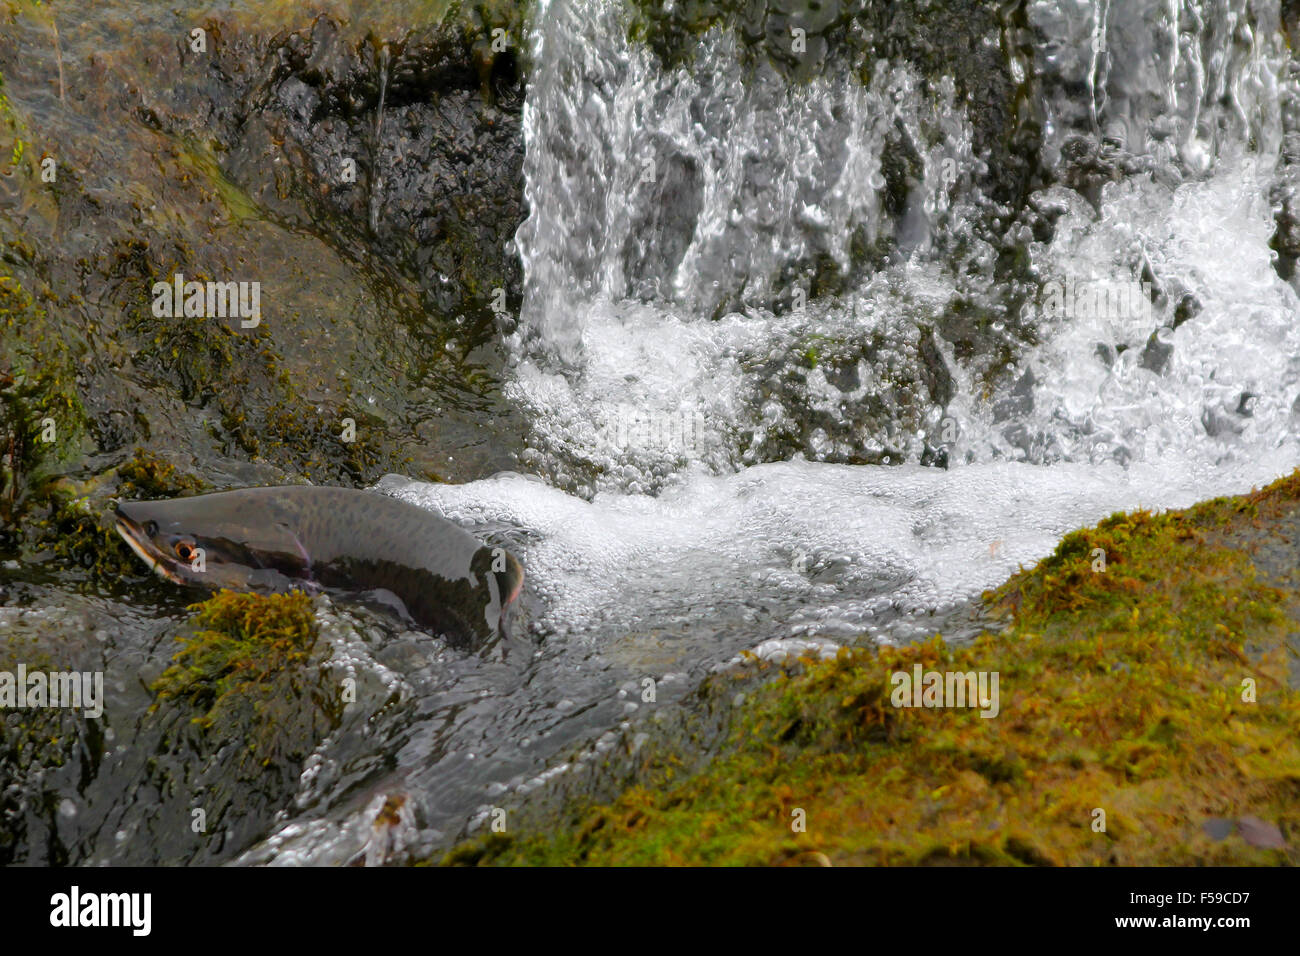 hunchback salmon has directed to a spawning place - Stock Image